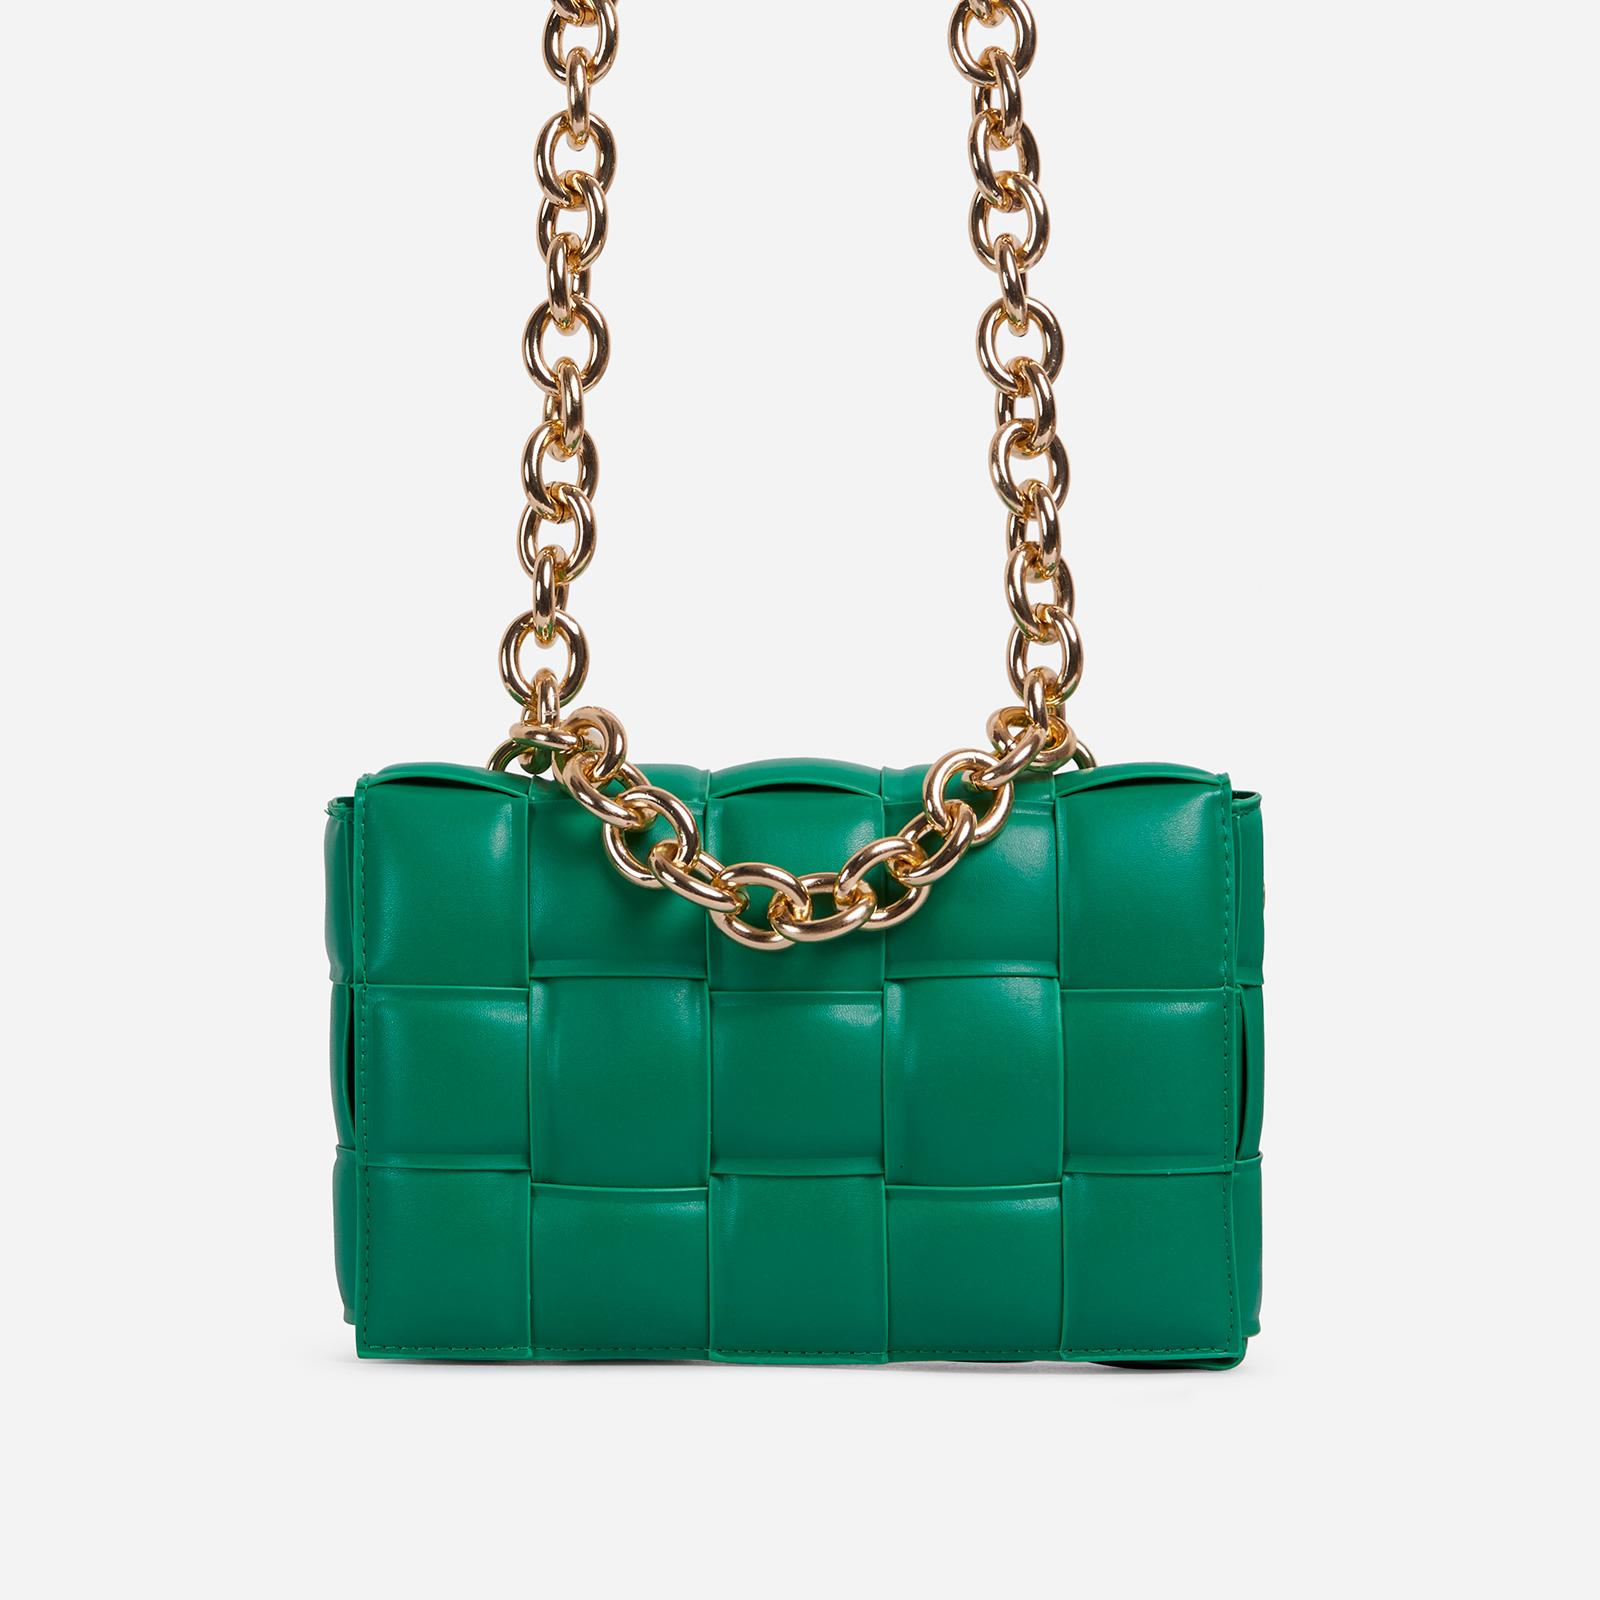 Ego JACKSON CHAIN DETAIL QUILTED SHOULDER BAG IN GREEN FAUX LEATHER